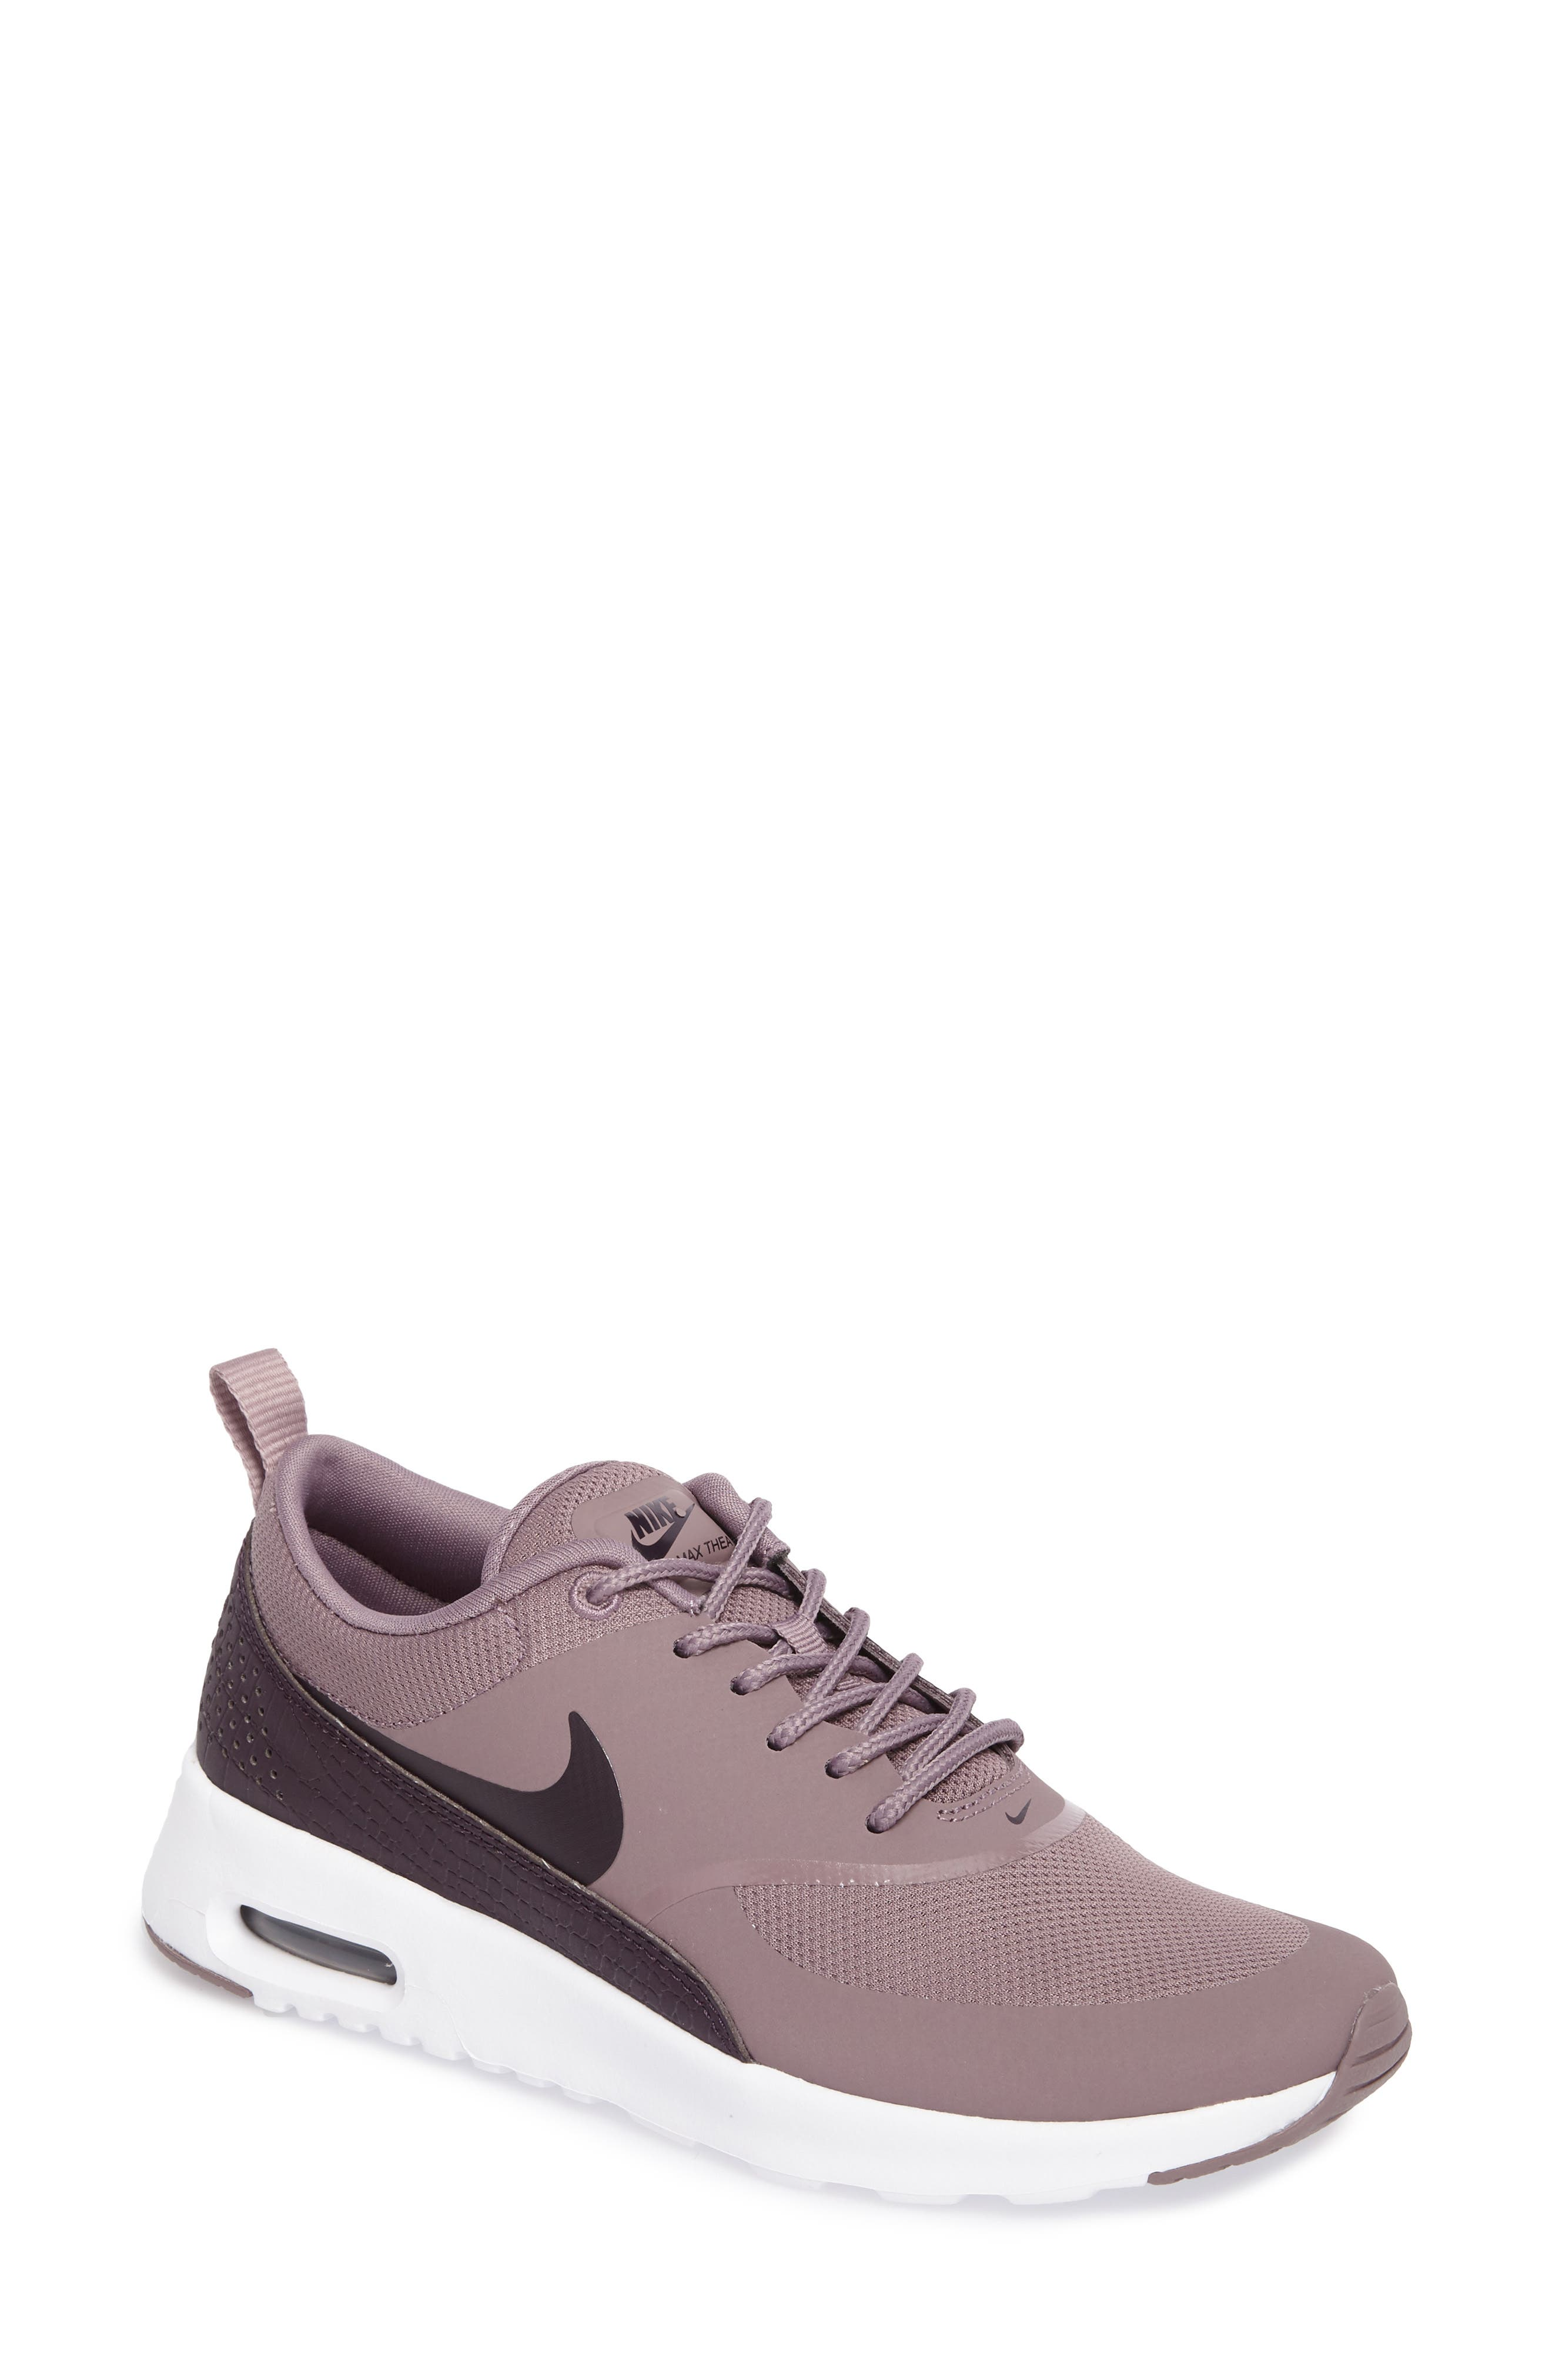 Main Image - Nike Air Max Thea Sneaker (Women)